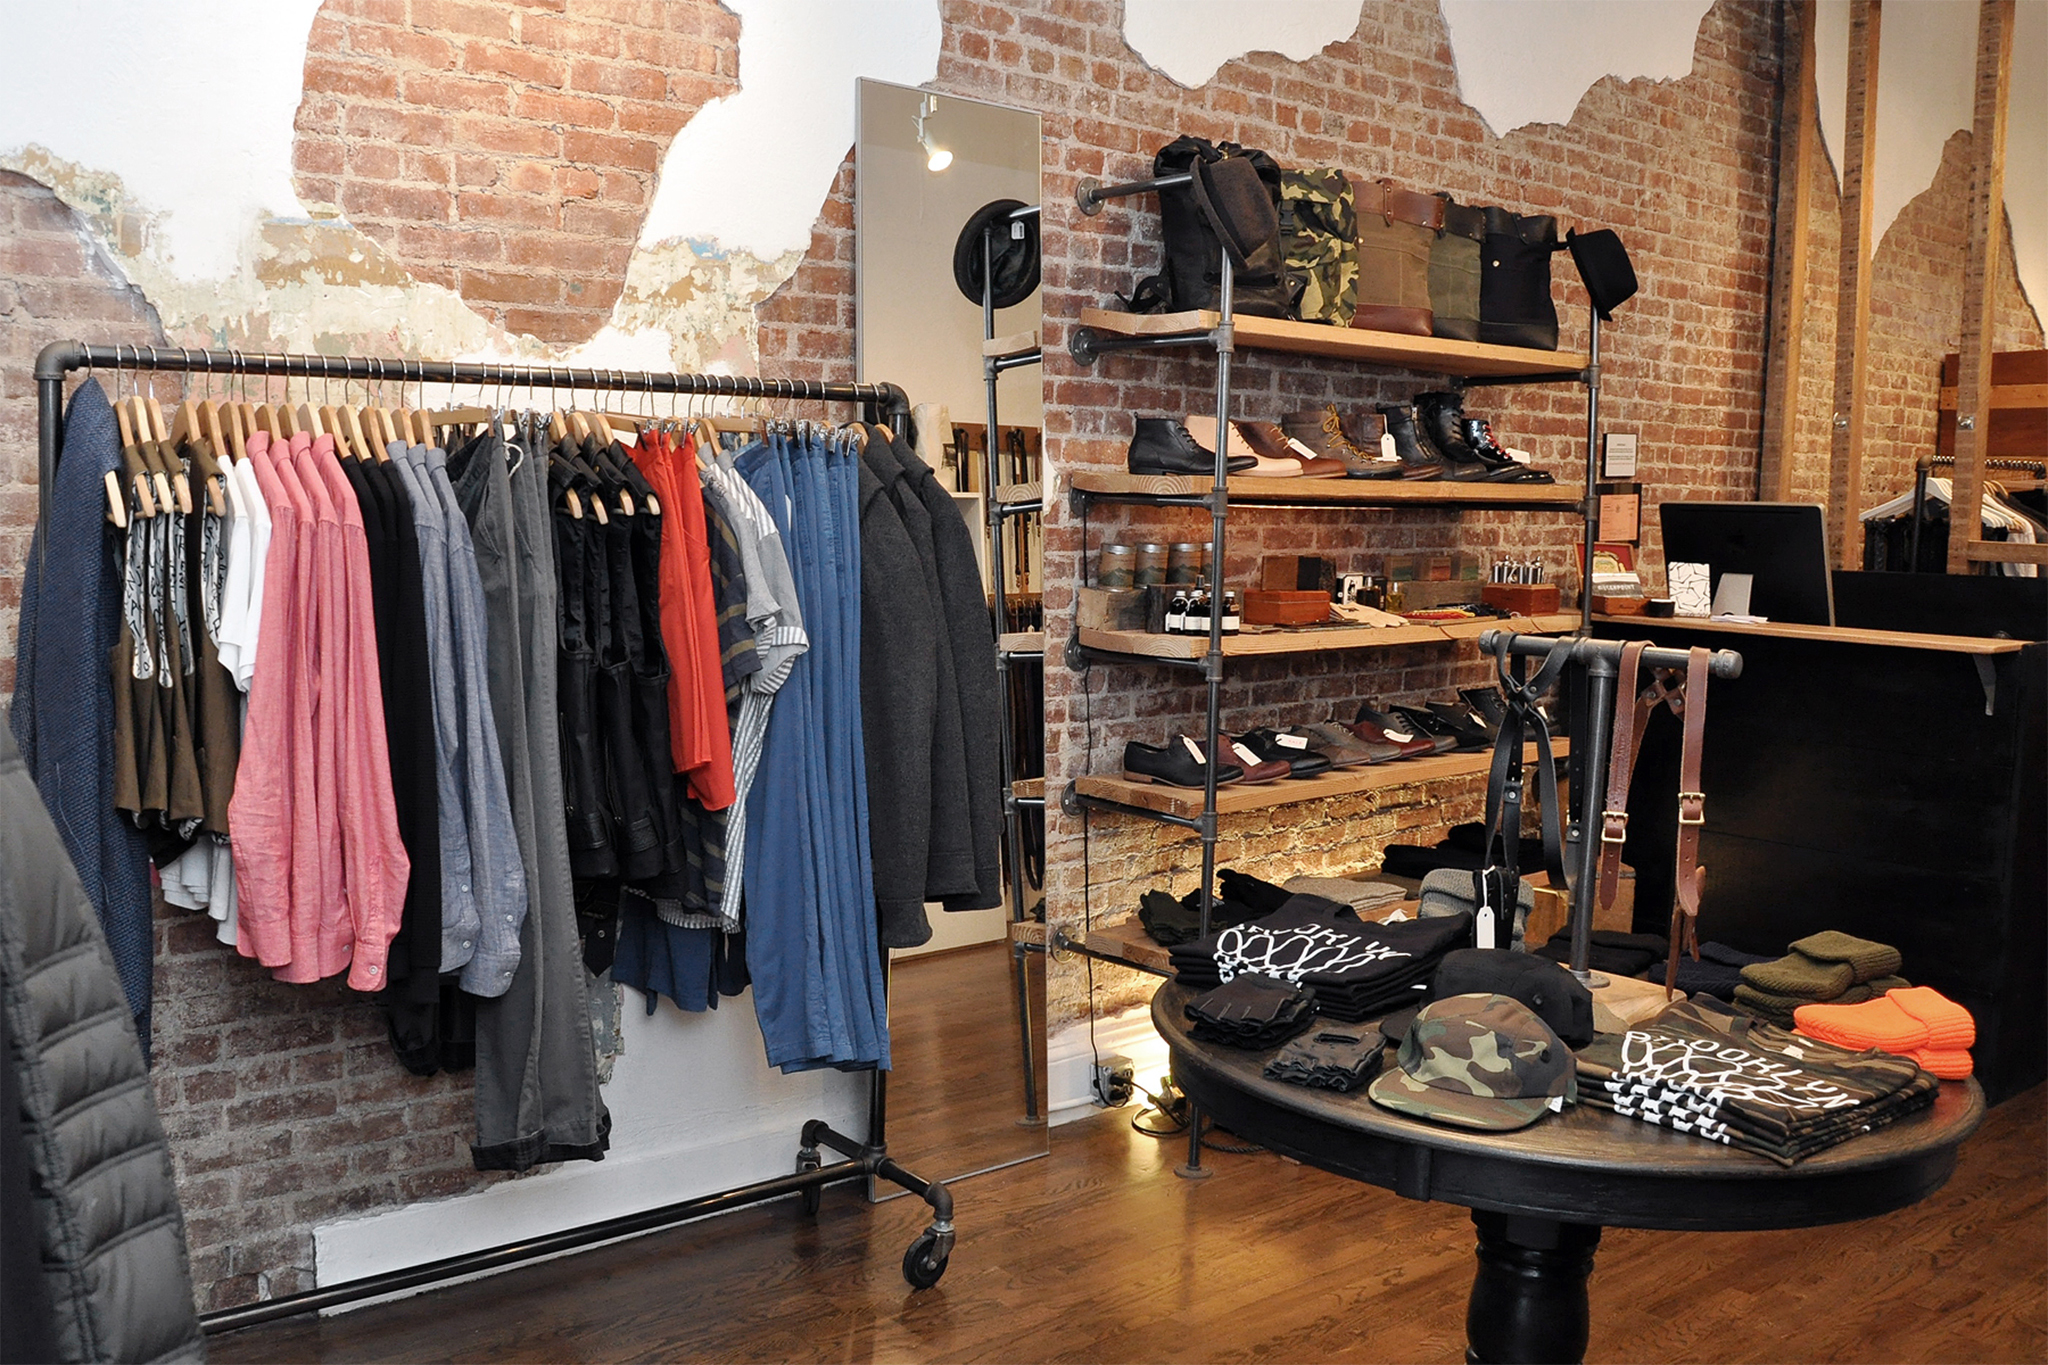 The 30 Best Clothing Stores in New York. The 30 Best Clothing Stores in New York. Skip to content Search as I move the map. Things to do in New York / Shopping / Clothing Stores. Best Clothing Stores in New York Womens and mens clothing store. From Tennille's guidebook.